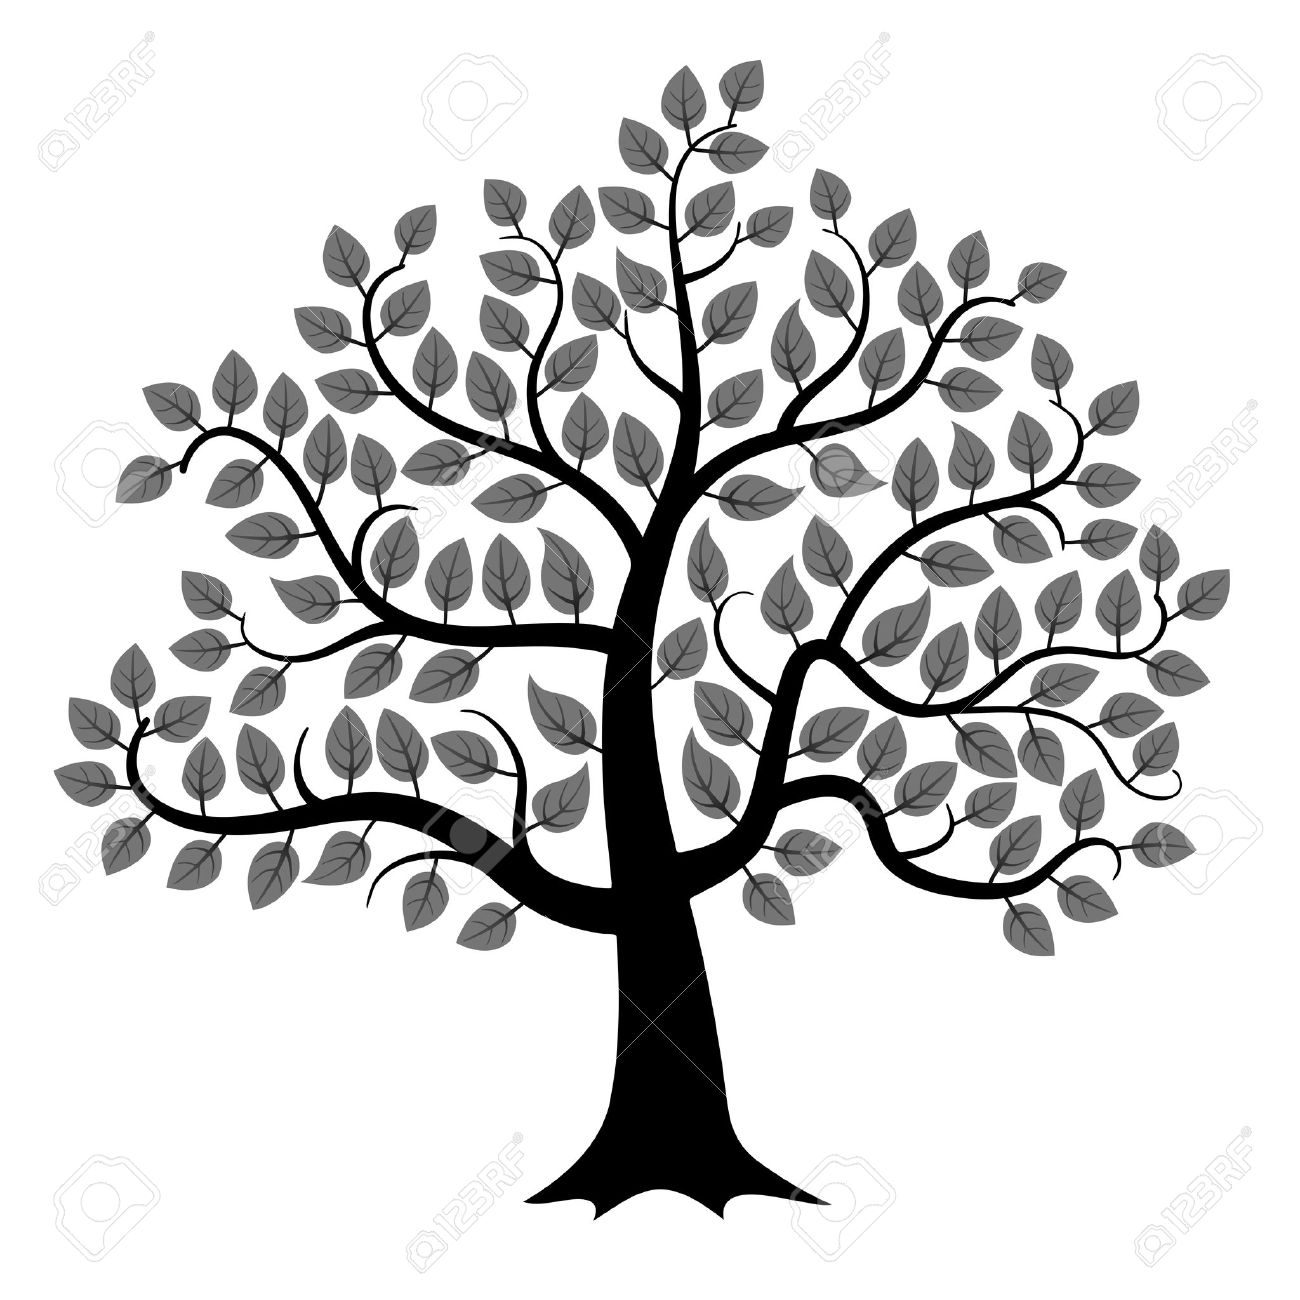 Black tree silhouette isolated on white background, vector illustration.